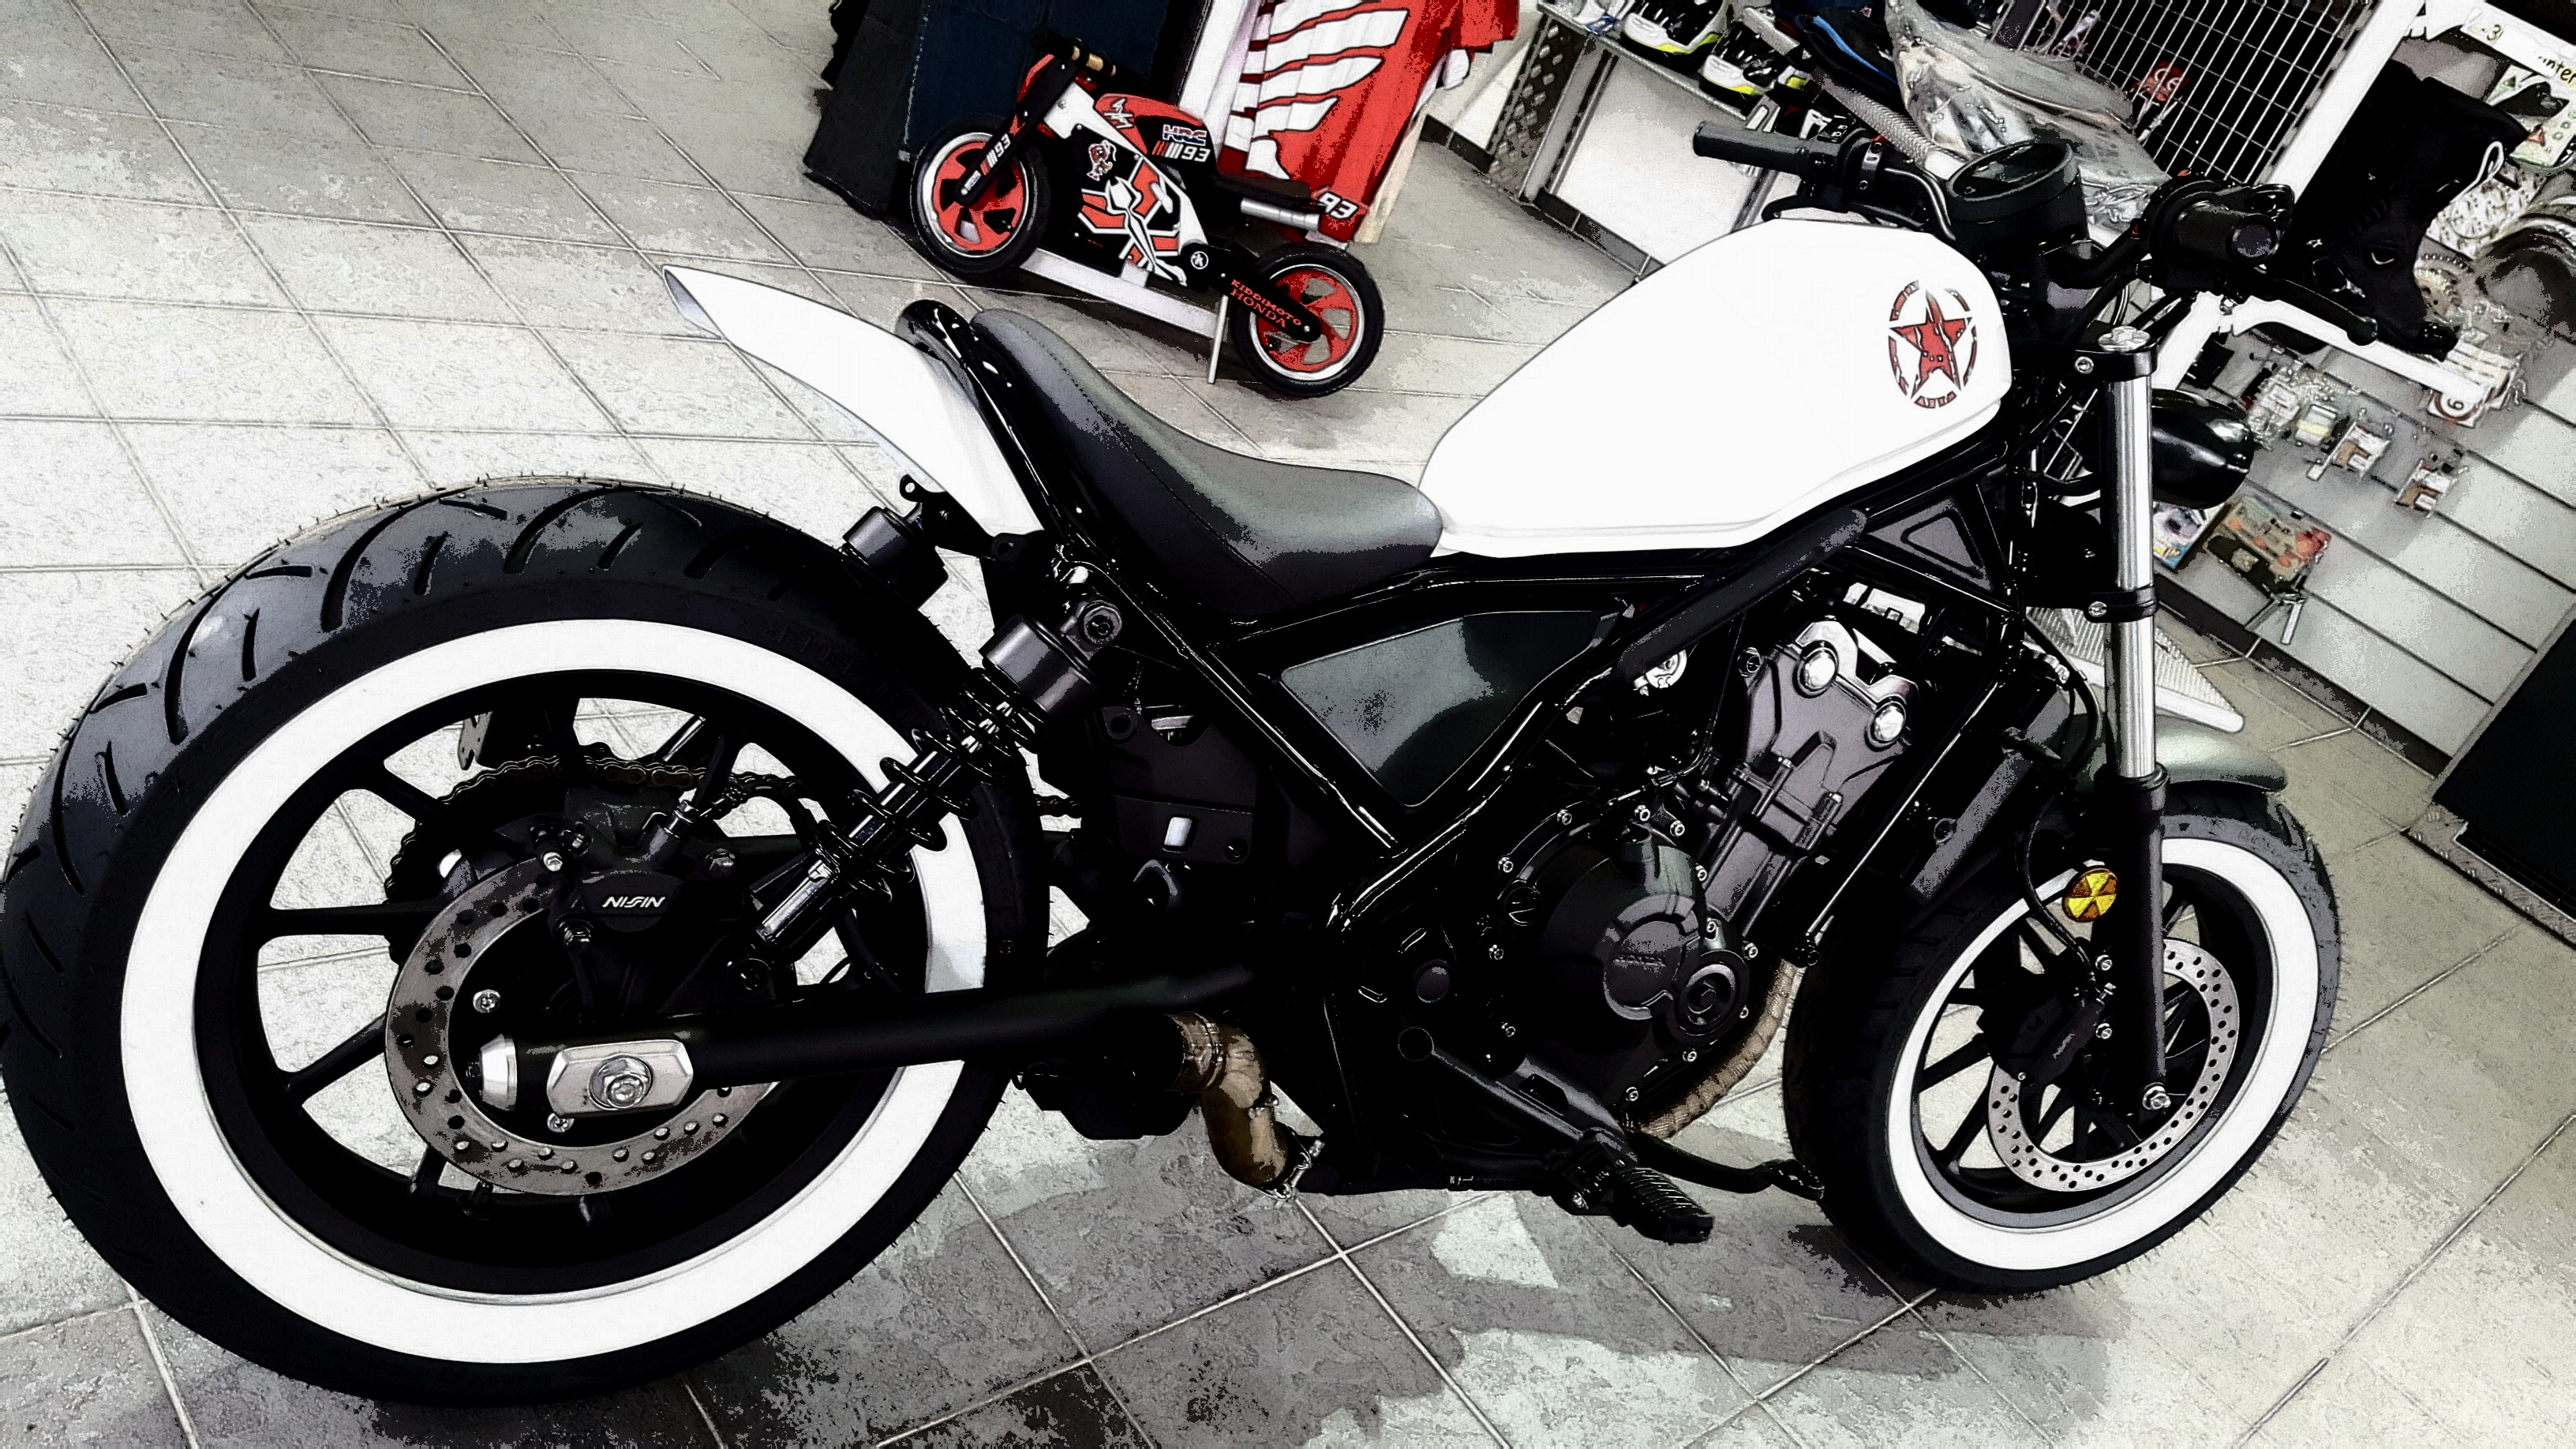 HONDA_REBEL_CUSTOMIZING_HALLER_MOTOS